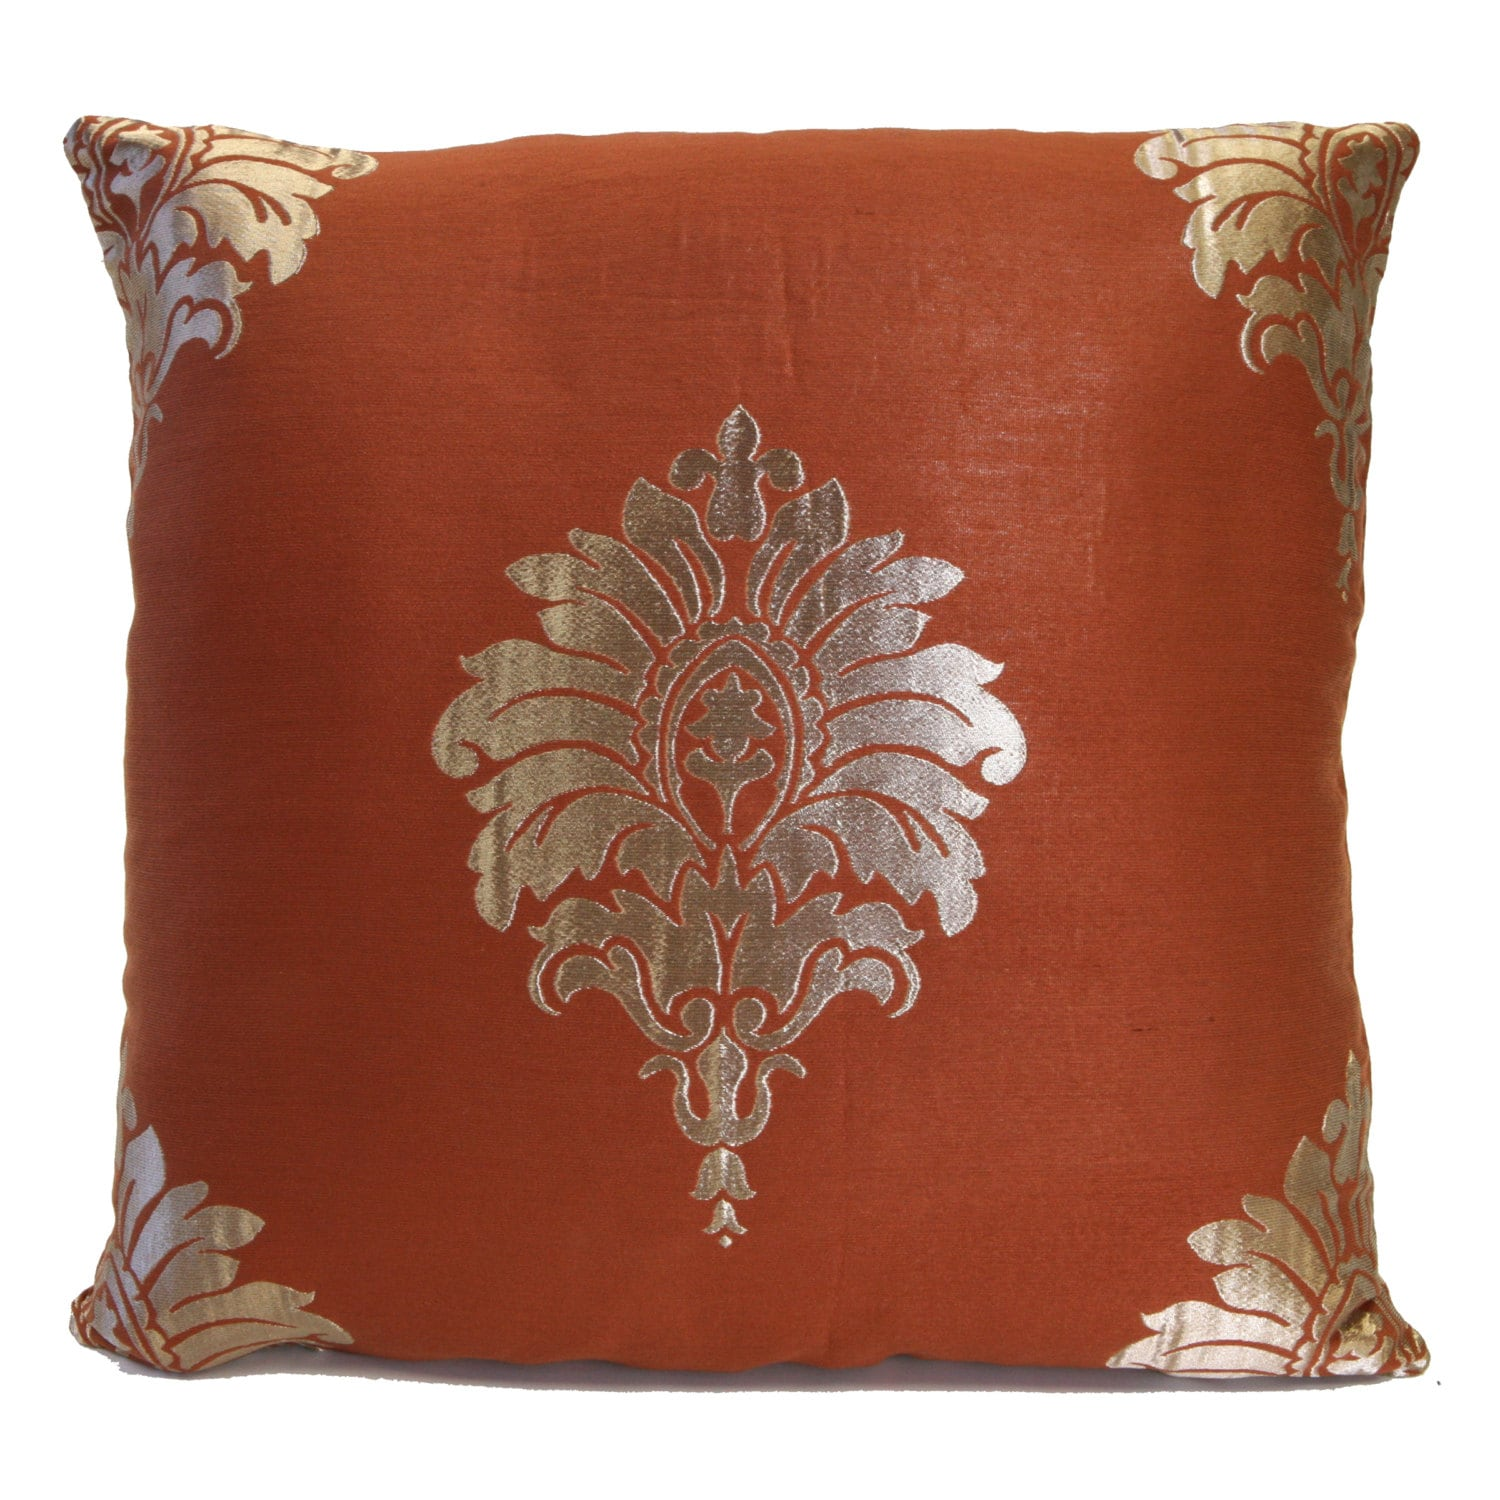 Cinnamon Rust Pillow Throw Pillow Cover Decorative Pillow